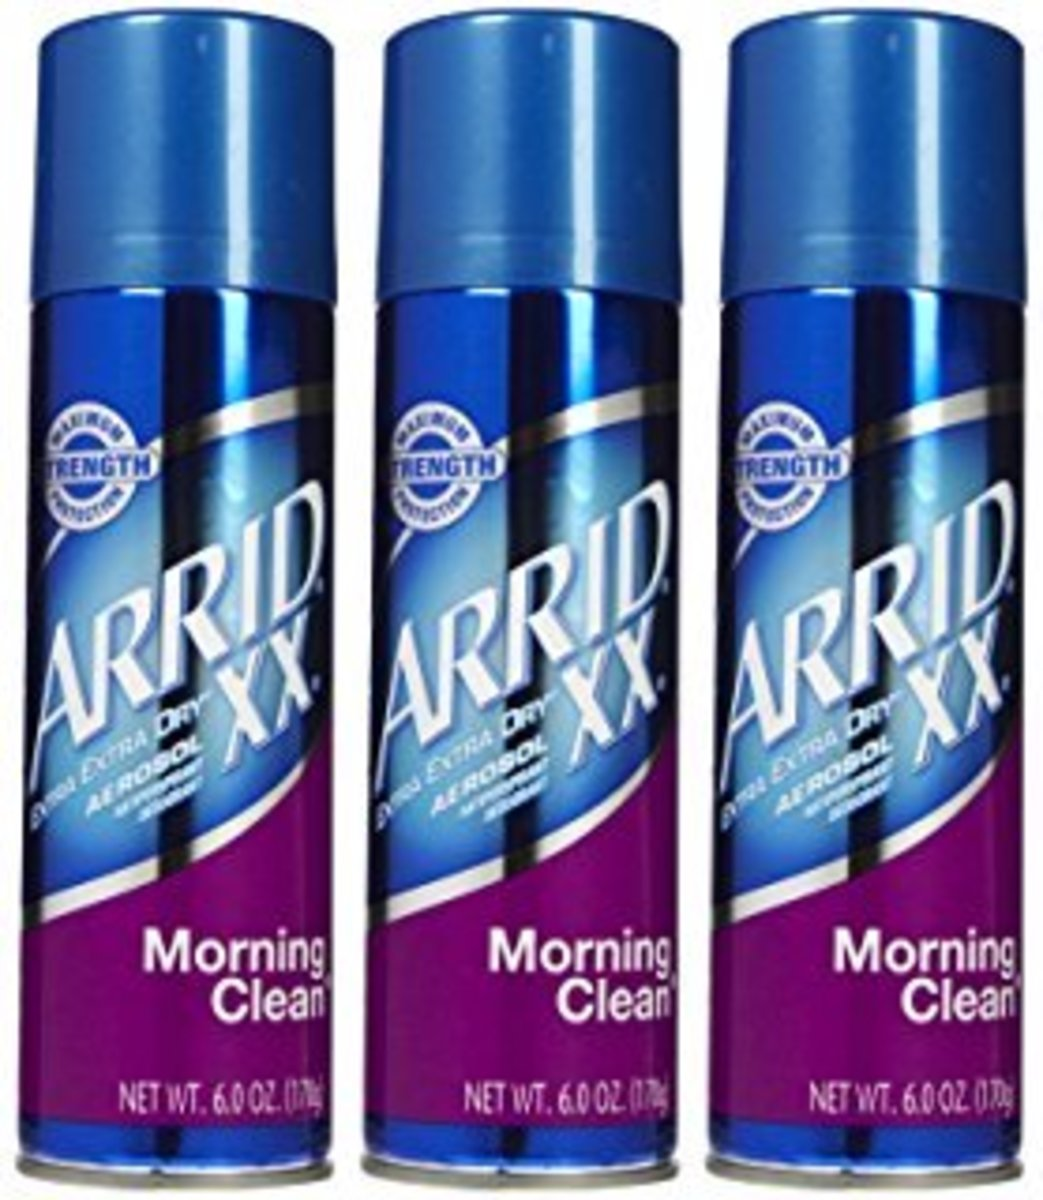 Extra Extra Dry's Morning Clean scent